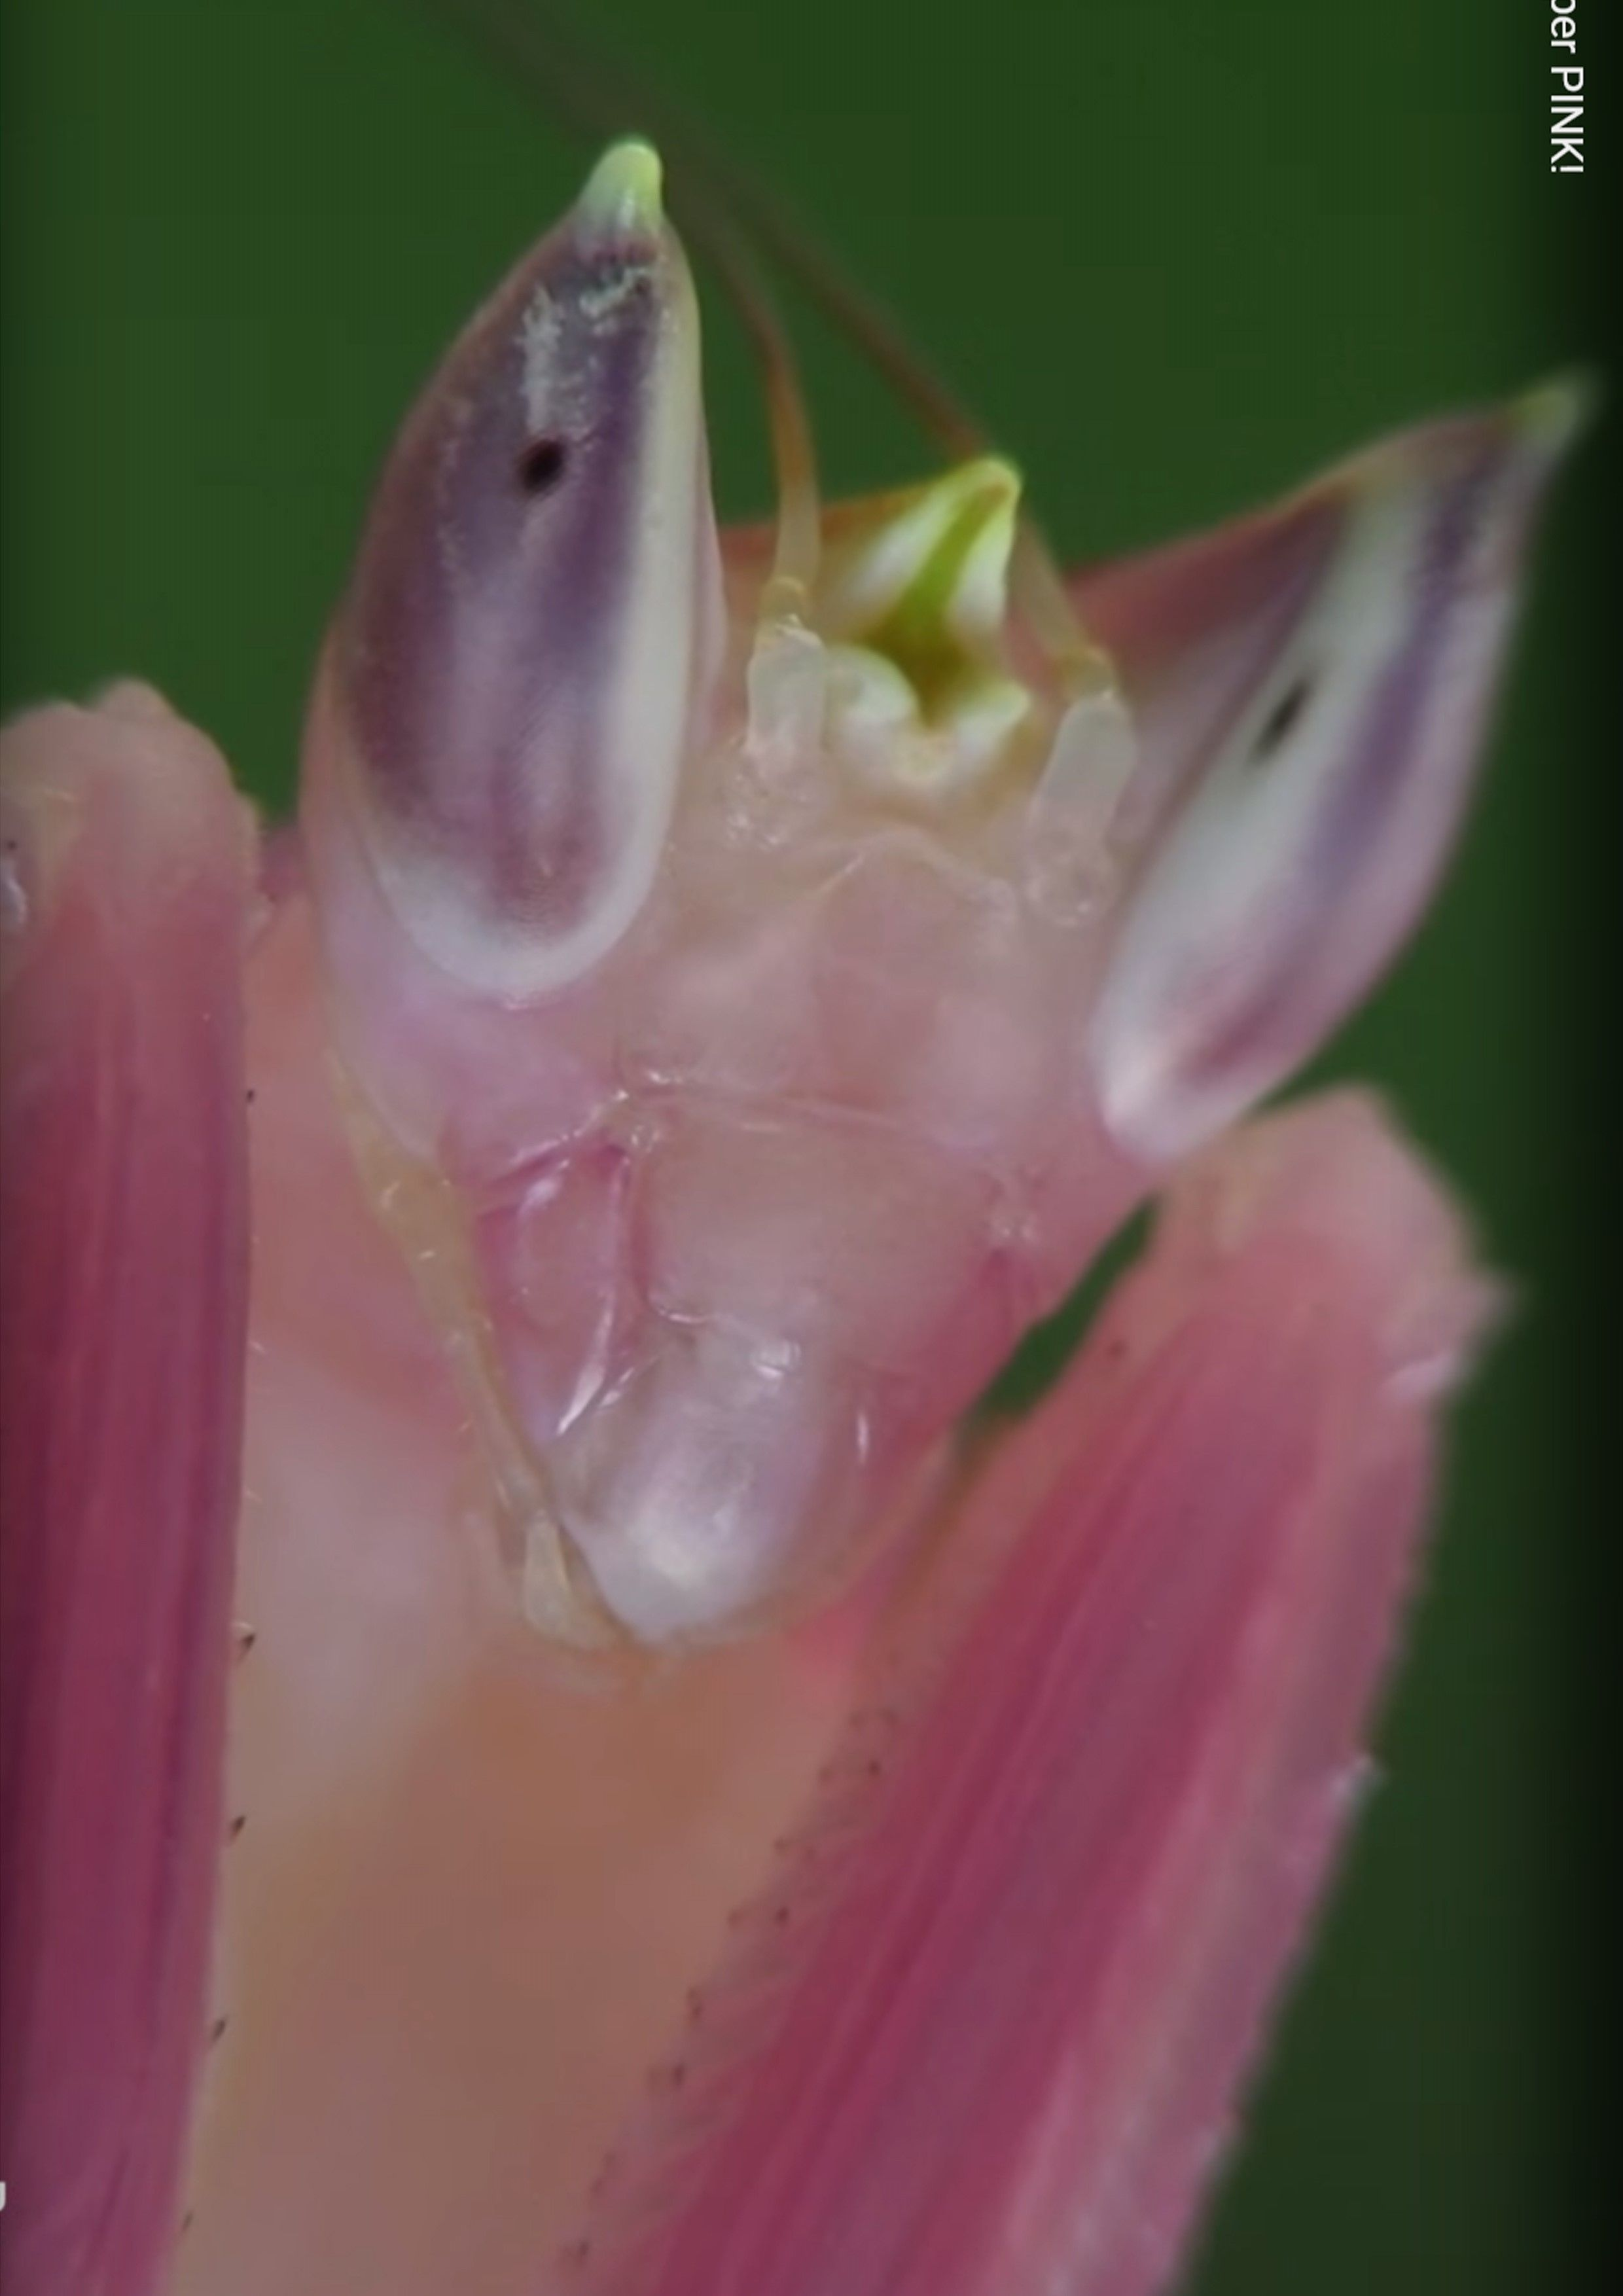 Pin by iona brinch on orchid mantis pinterest colorful animalscute animalspink orchidspraying mantisanimal kingdommother natureinsectsdragonfliesbeetles dhlflorist Image collections